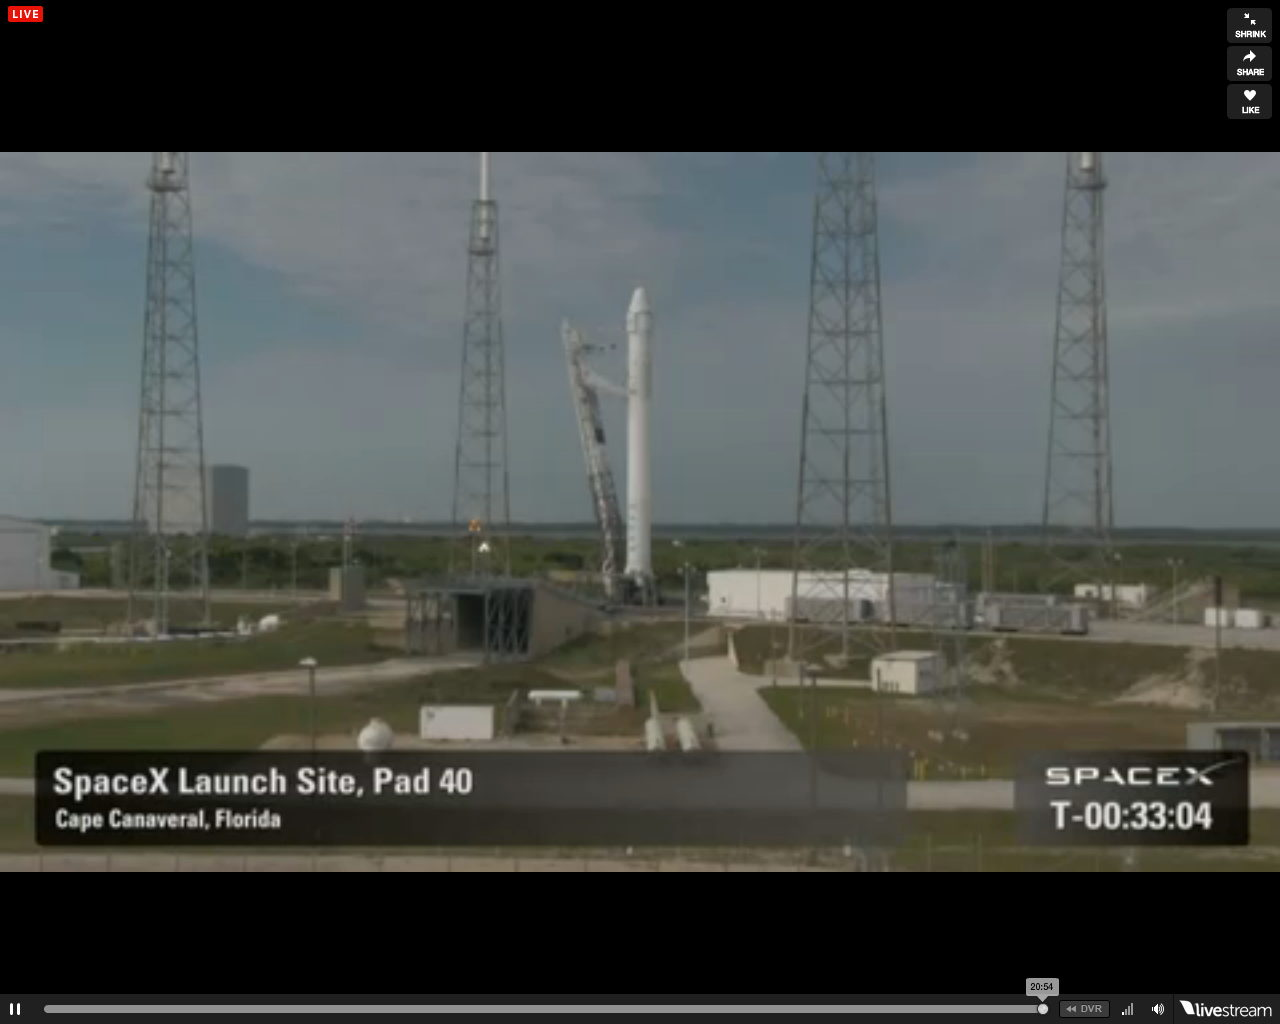 SpaceX's Falcon 9 on Launch Pad